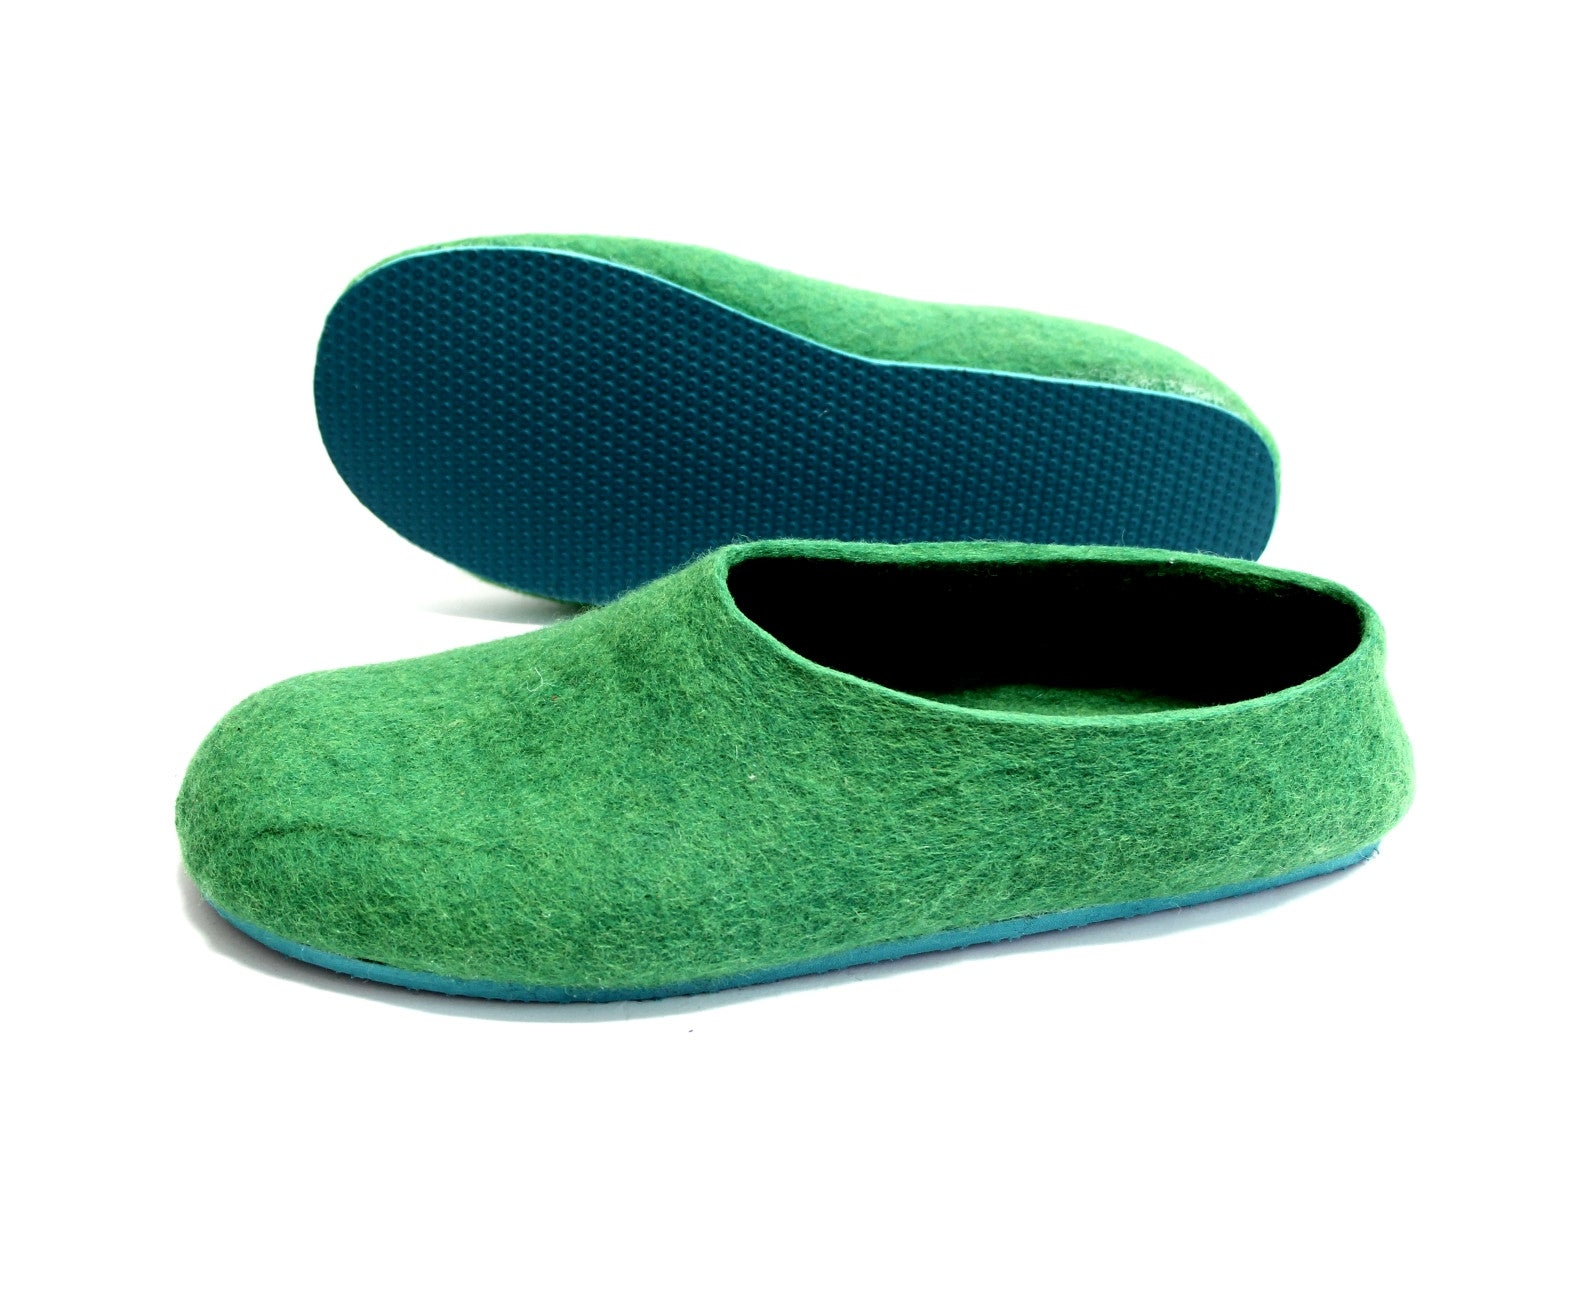 Mens Felt Slippers Green Tree Top Contrast Sole - Wool Walker  - 1